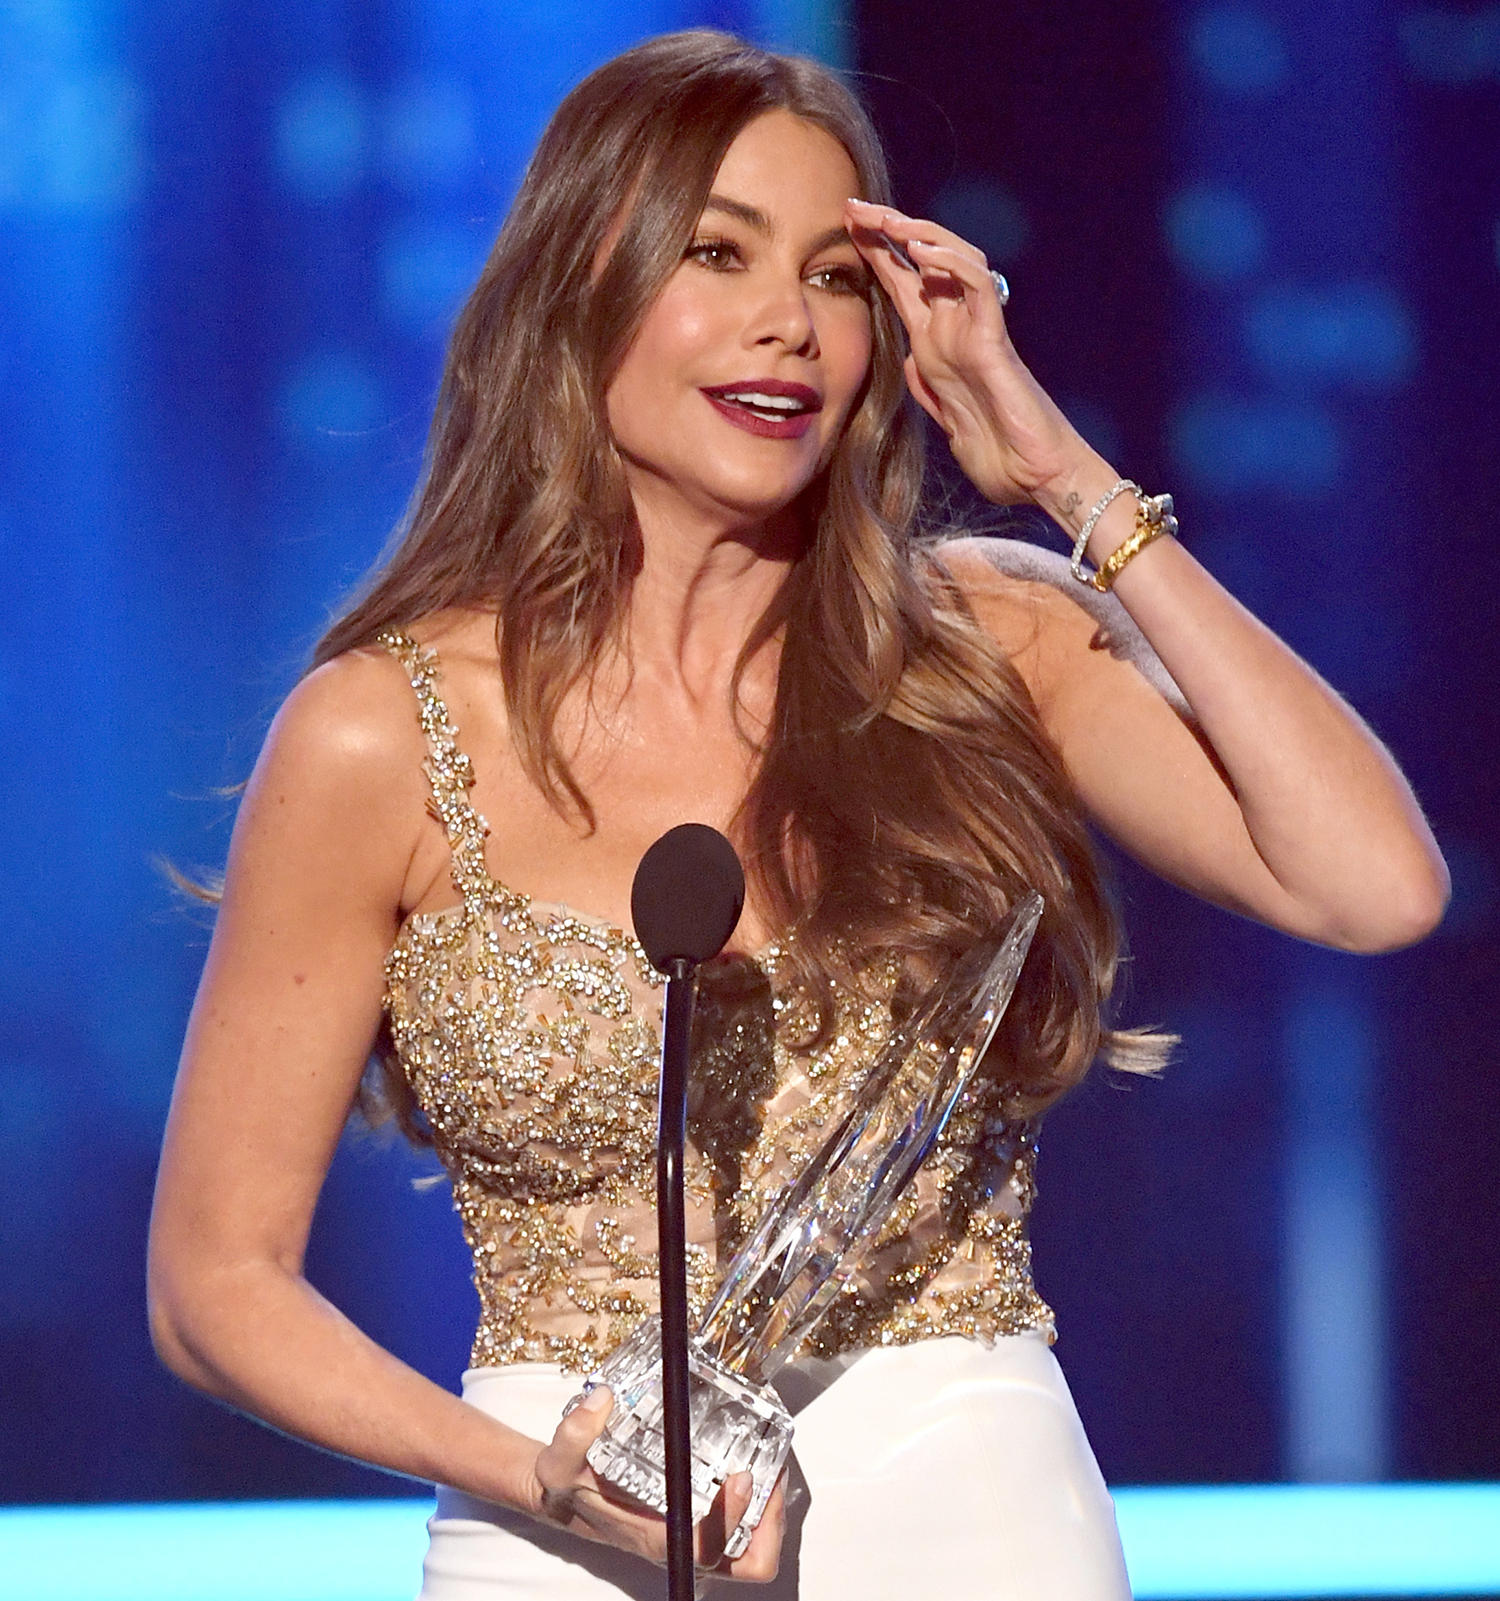 Sofia Vergara accepts Favorite Comedic TV Actress for 'Modern Family' onstage during the People's Choice Awards 2017 at Microsoft Theater on January 18, 2017 in Los Angeles, California.